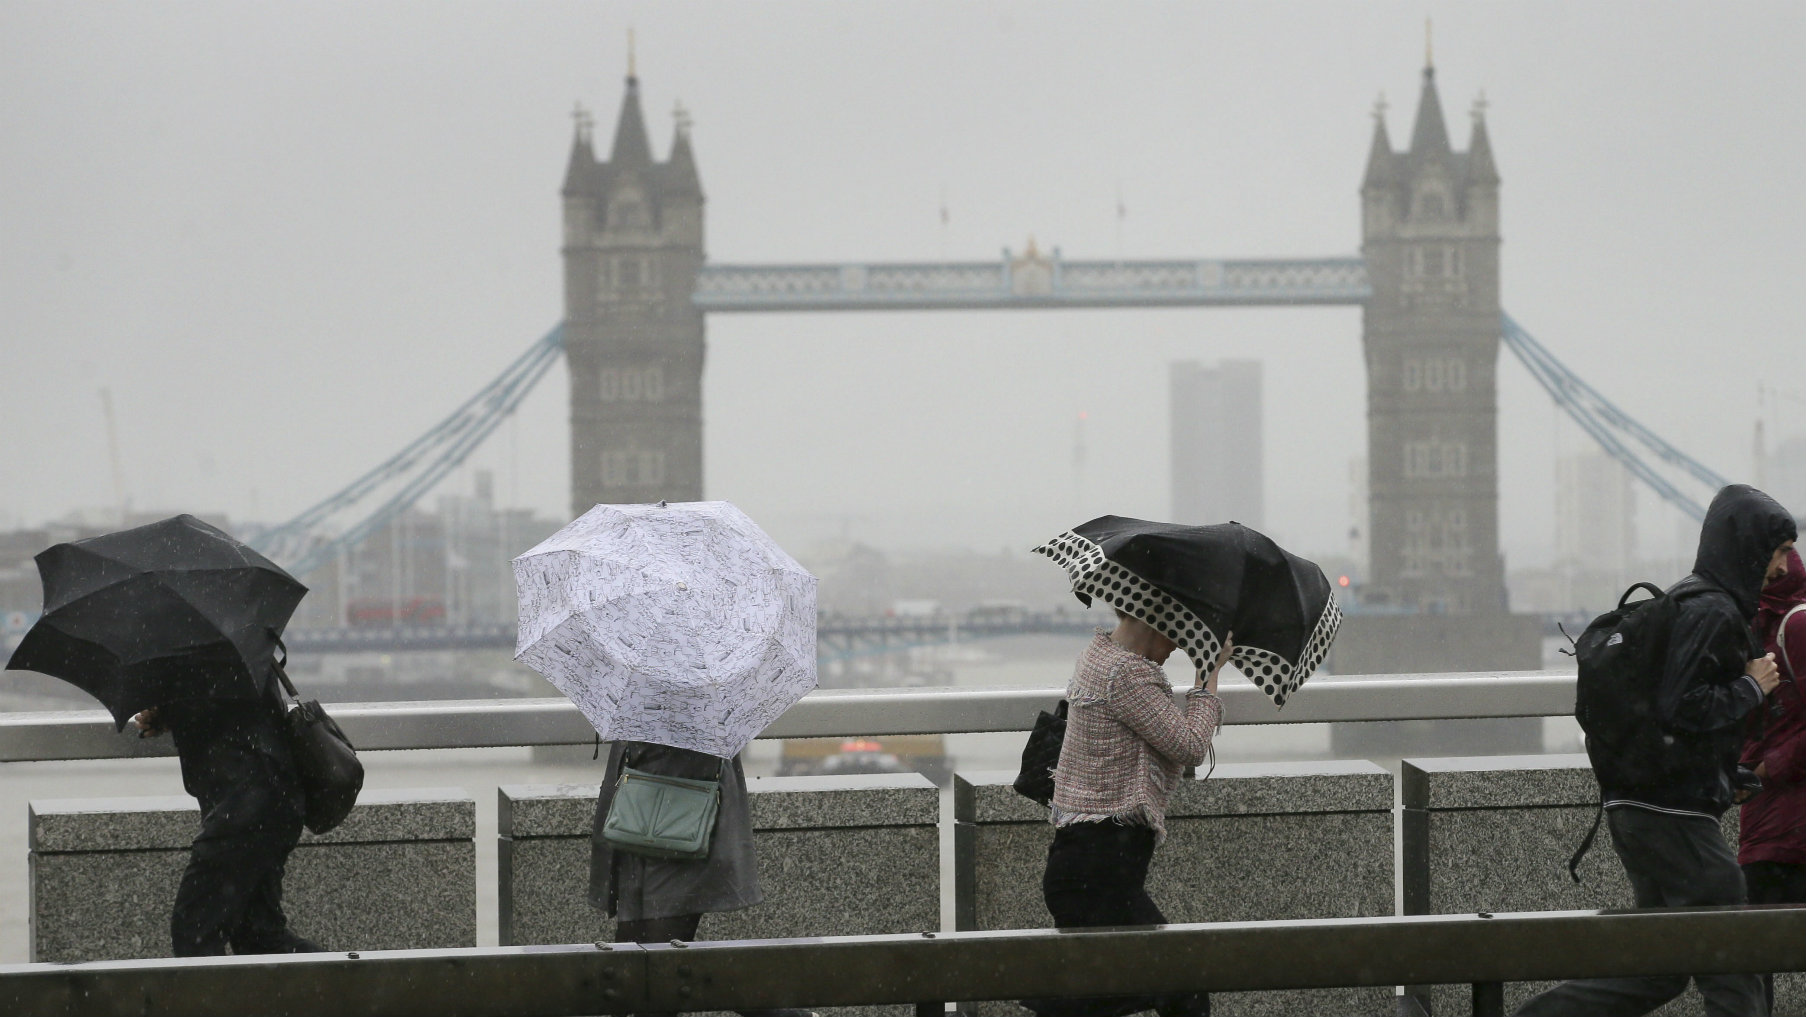 London commuters in the rain